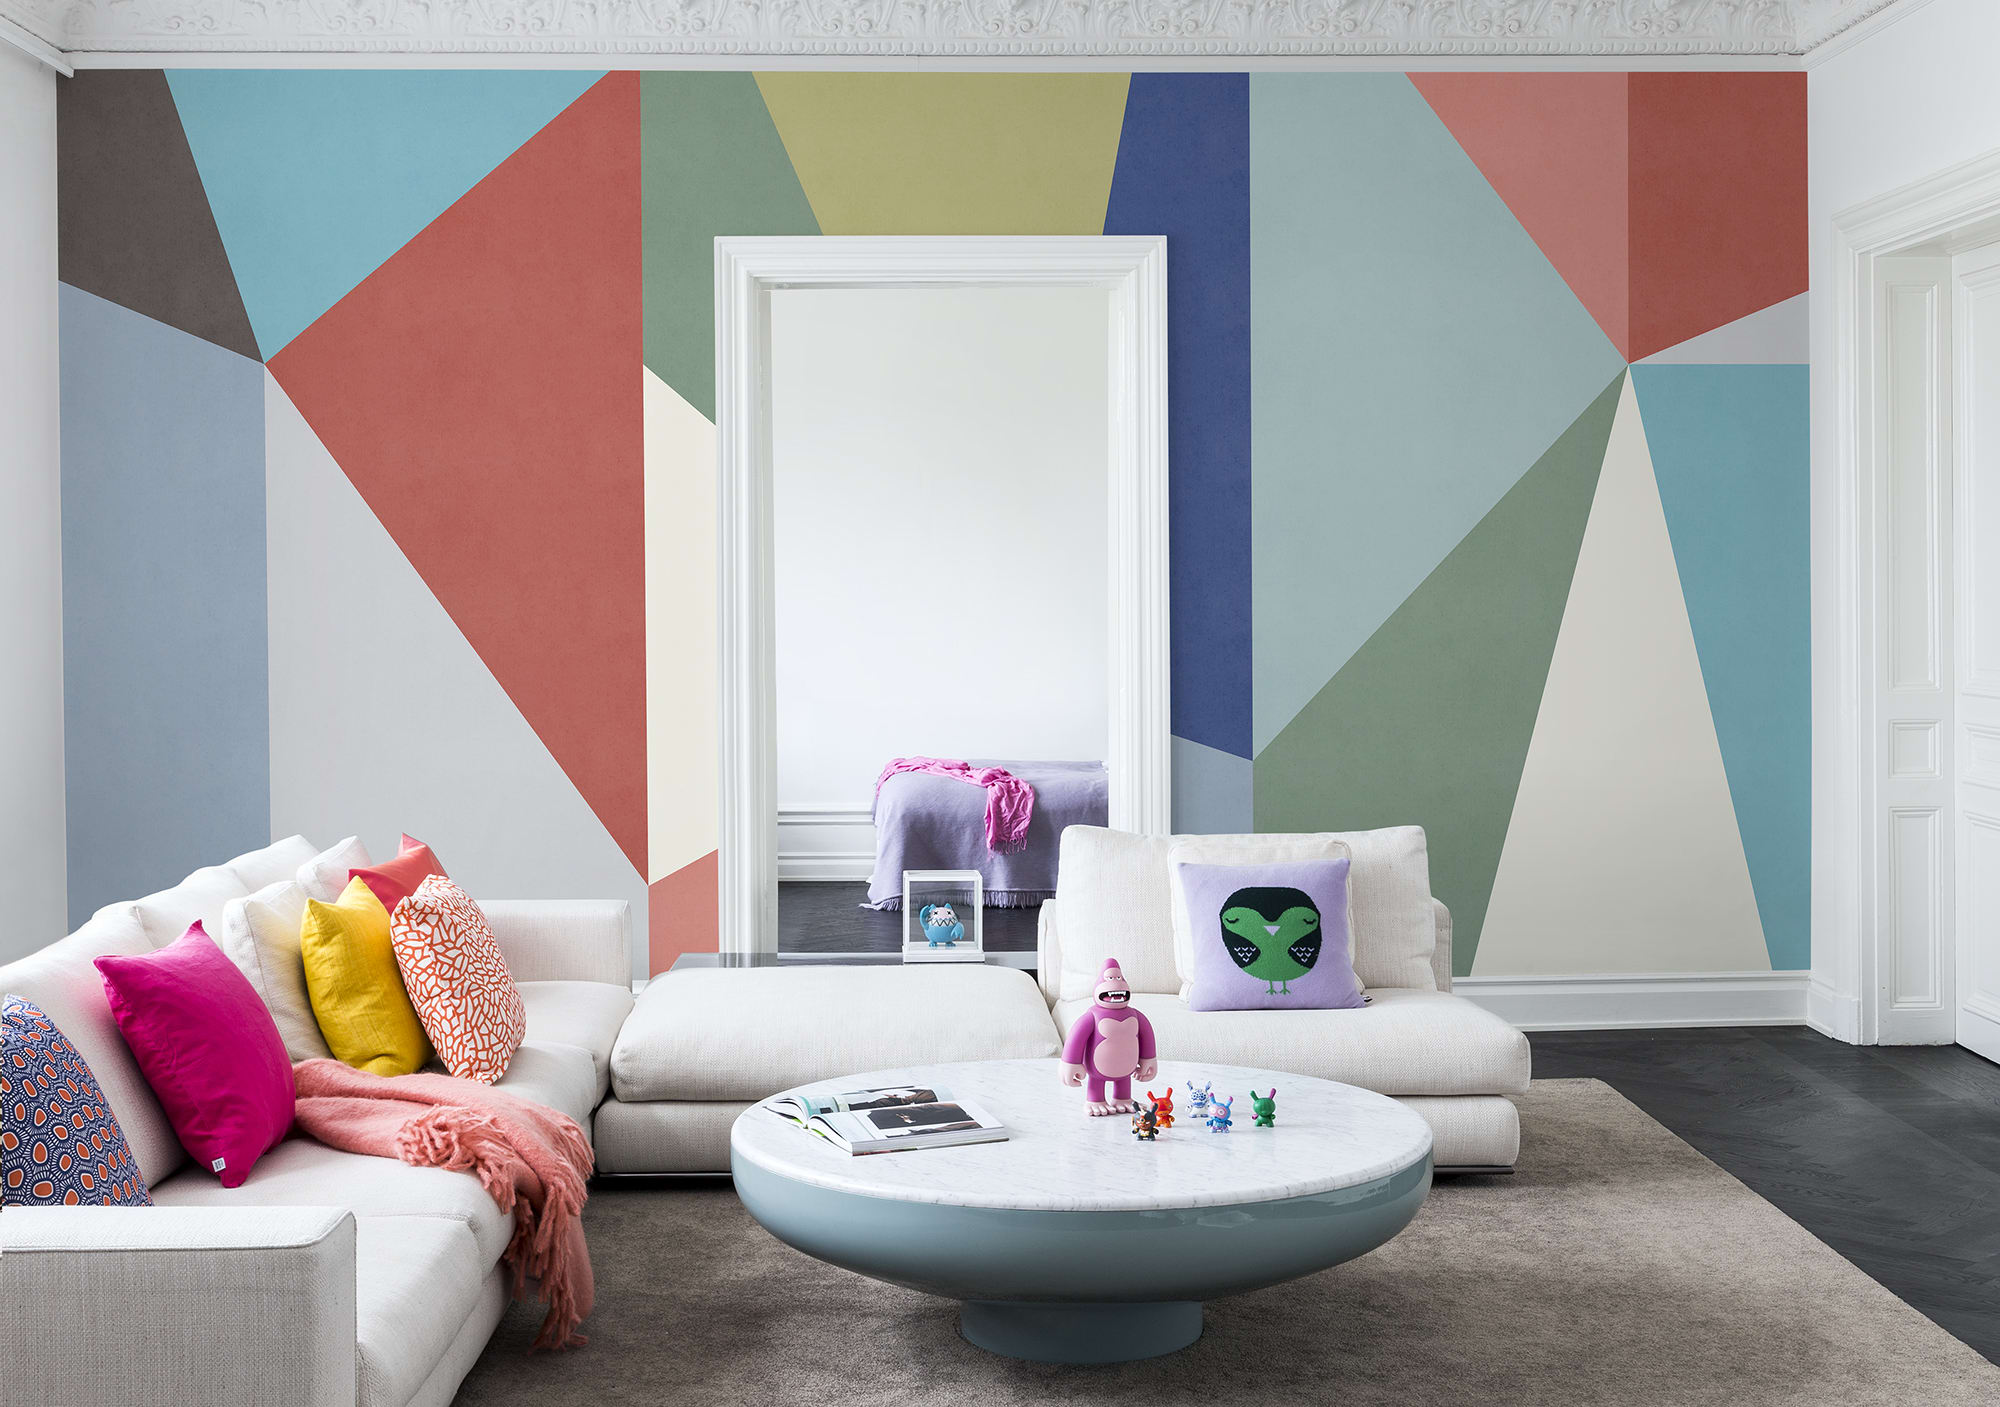 Rebel Walls Is Launching Spectrum, A Multi-coloured Wallpaper Collection For Colourful Individuals